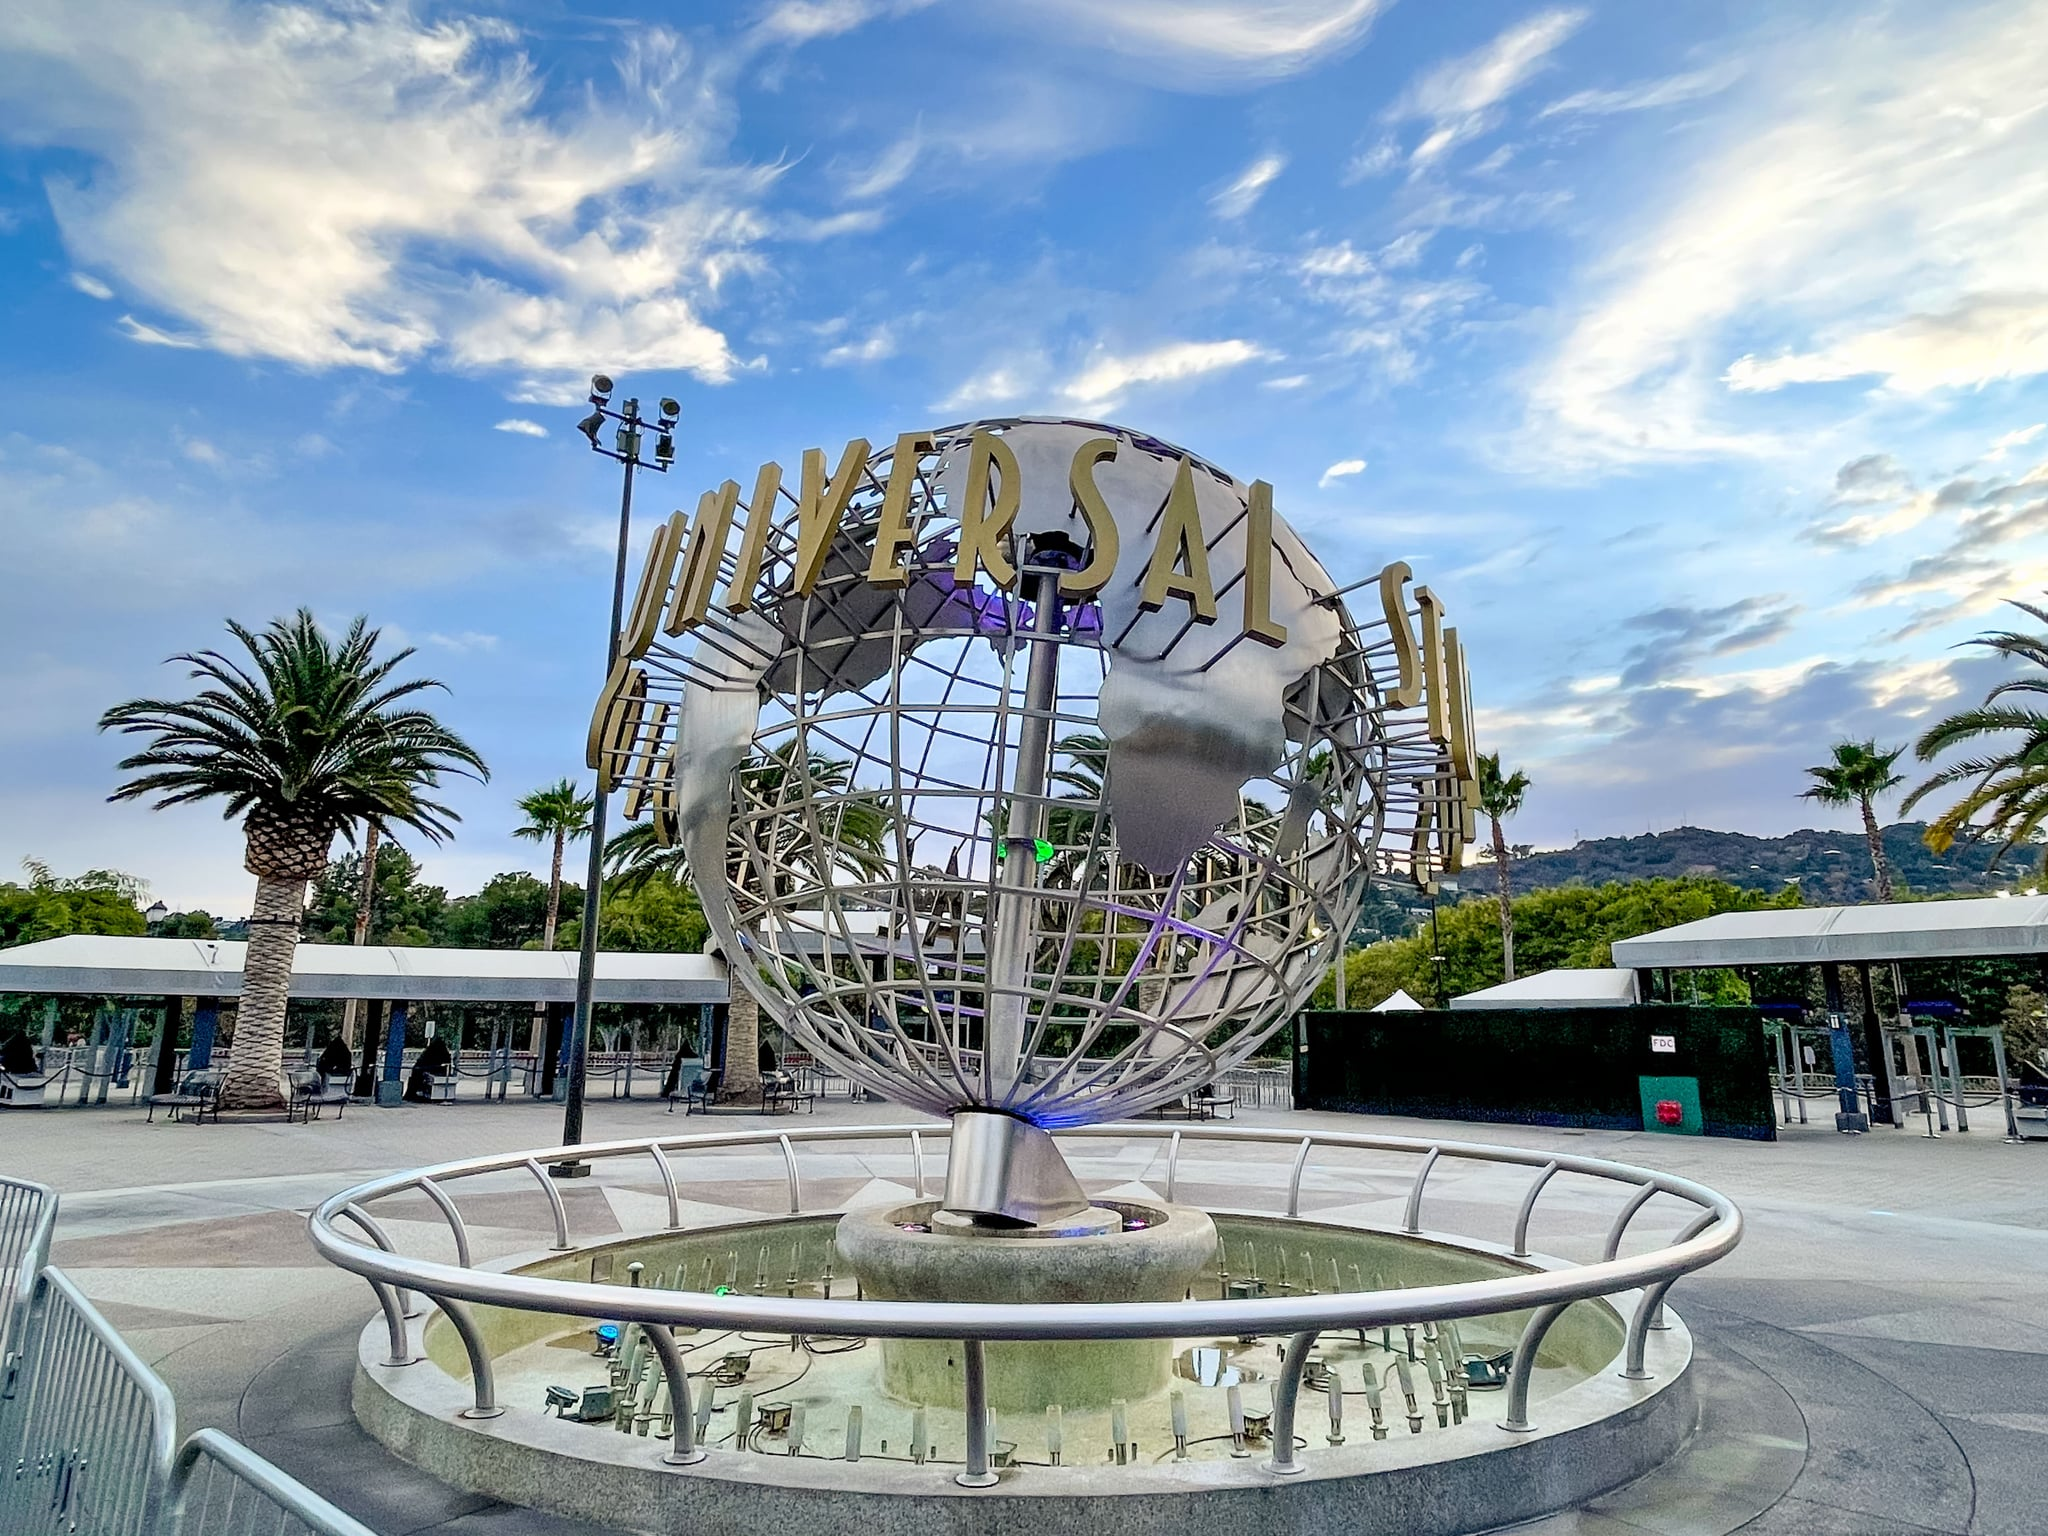 UNIVERSAL CITY, CA - DECEMBER 24: General views of Universal Studios Hollywood on December 24, 2020 in Universal City, California.  (Photo by AaronP/Bauer-Griffin/GC Images)